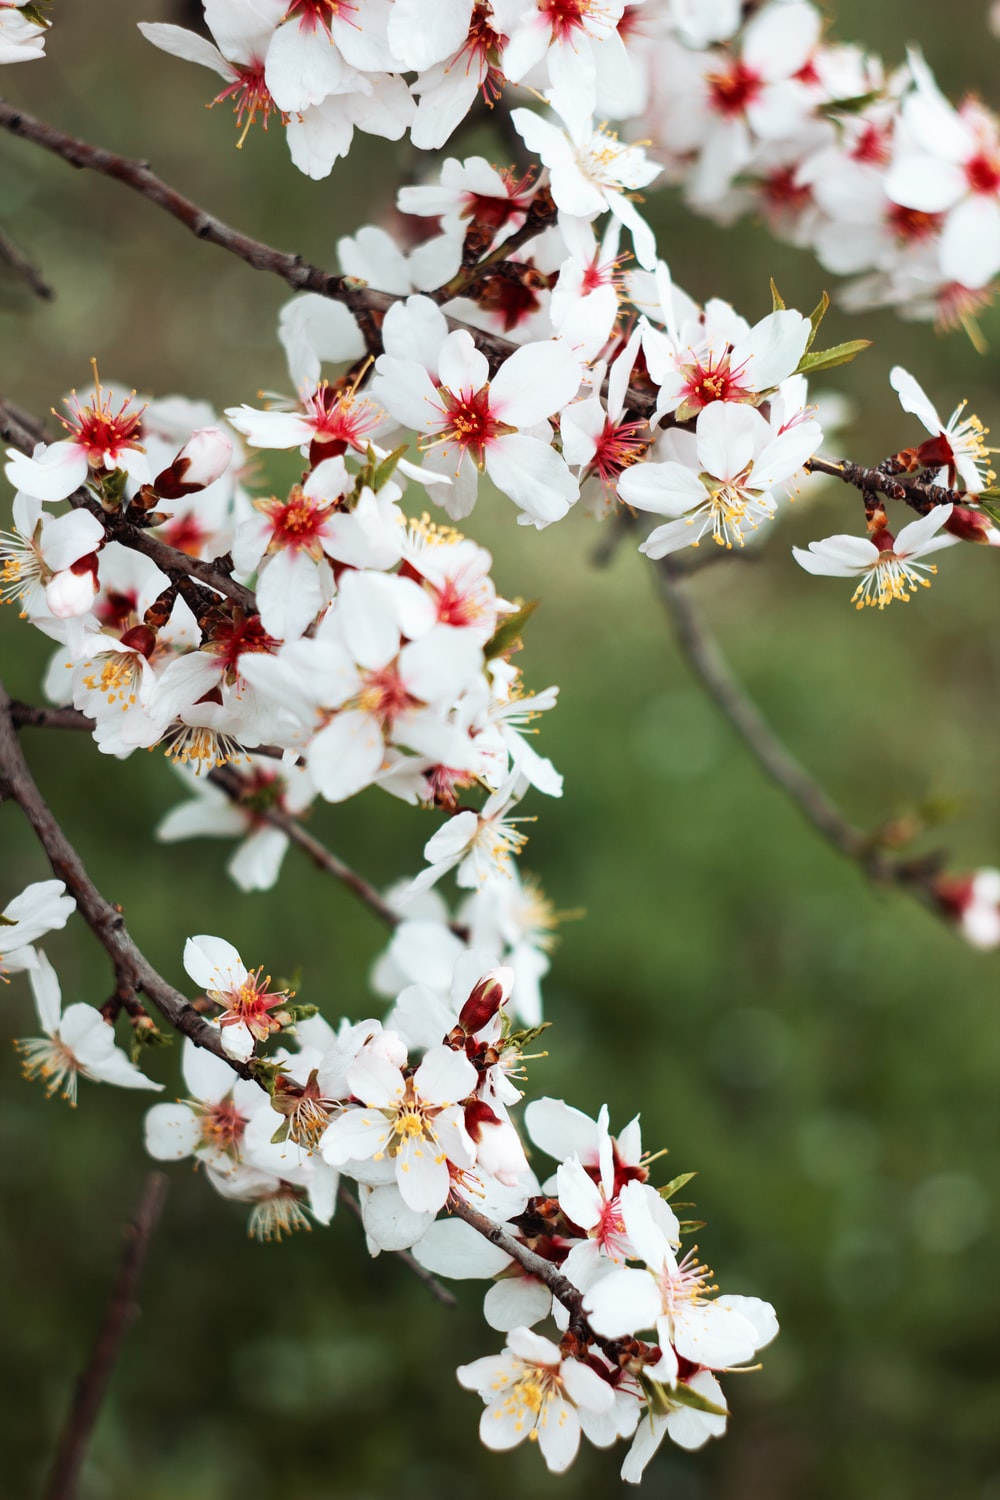 white and red cherry blossom flowers in bloom during daytime